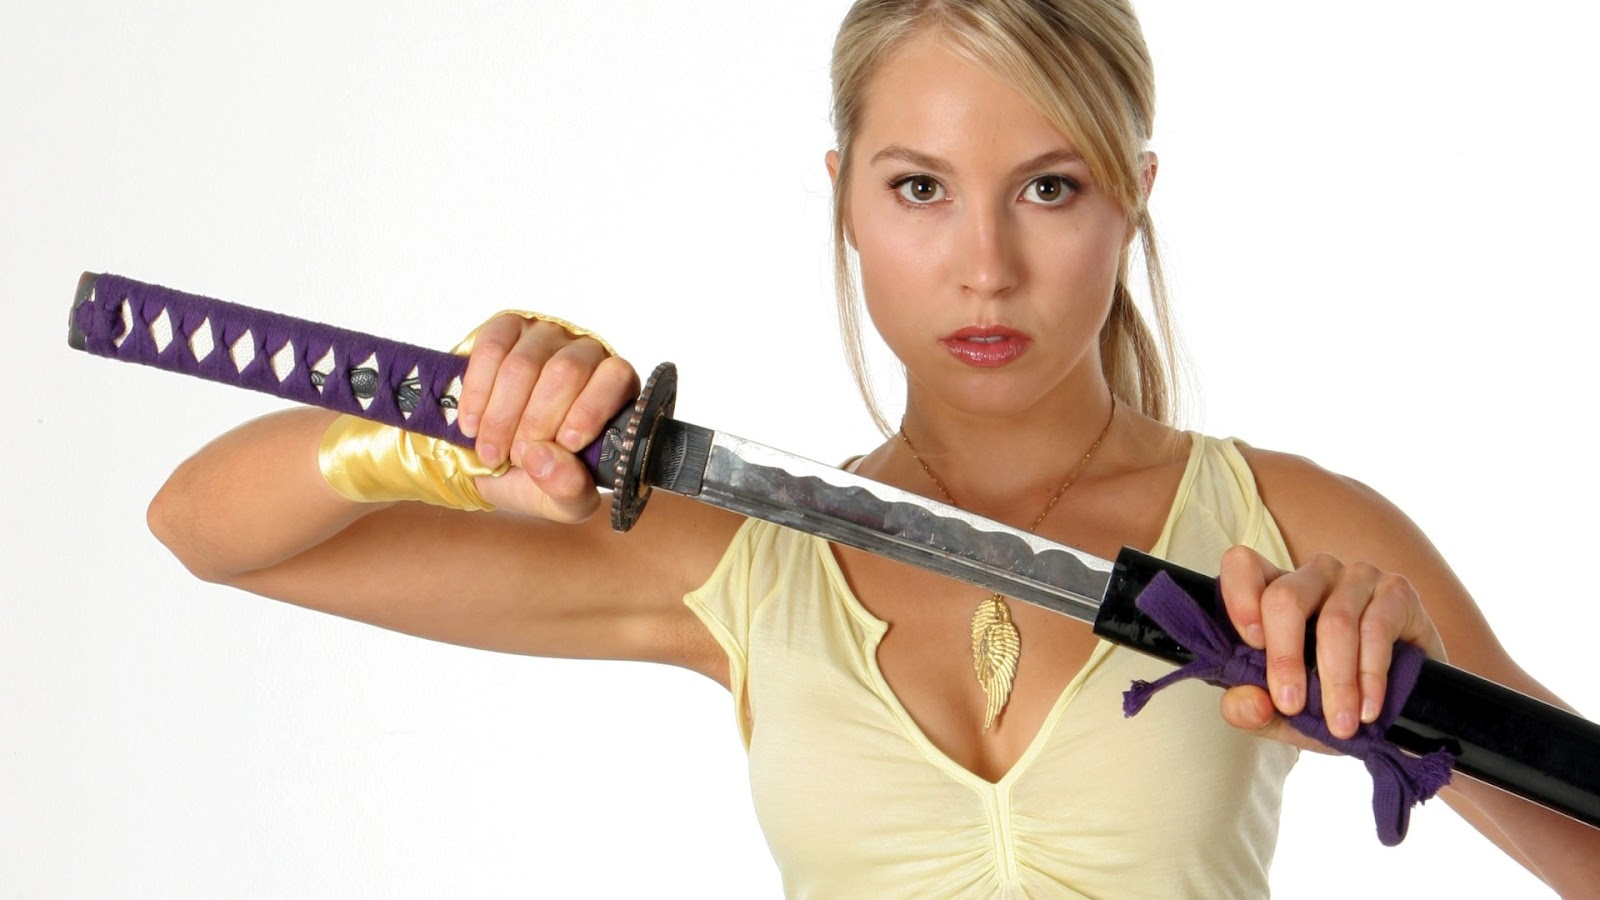 http://4.bp.blogspot.com/-dW1irn6UqRs/UBcrX5nIyDI/AAAAAAAAHhg/HlVxZjIAp4I/s1600/blondes-women-actress-samurai-Dead-Or-Alive-blade-Sarah-Carter-swords-Wallpaper.jpg